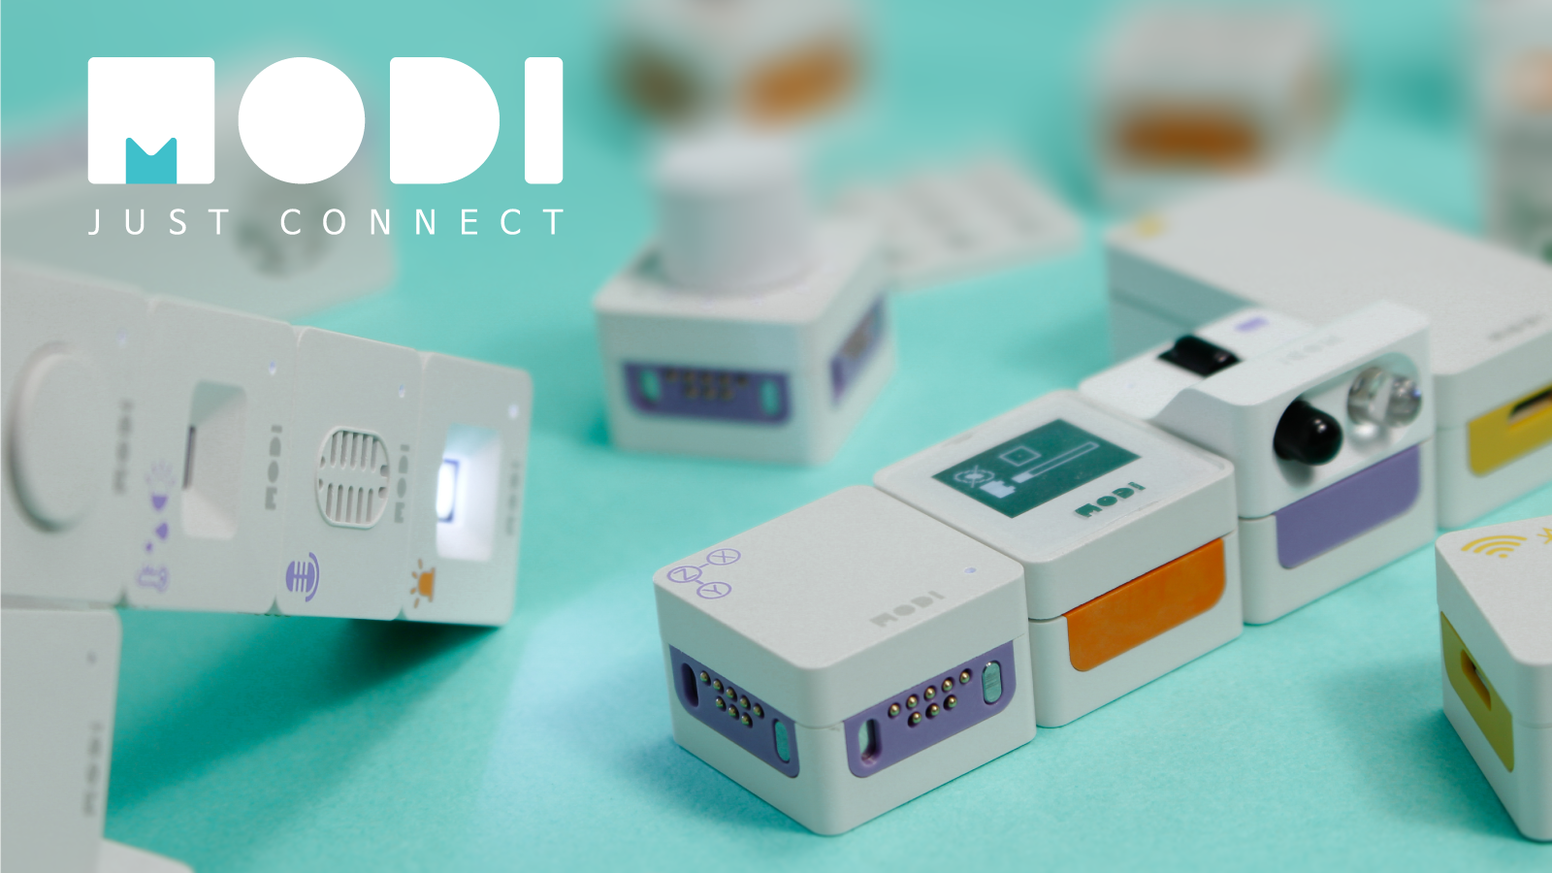 Modi create anything you want with robotics of things by luxrobo modi is a modular device for diy iot and robotic creations just connect and solutioingenieria Image collections